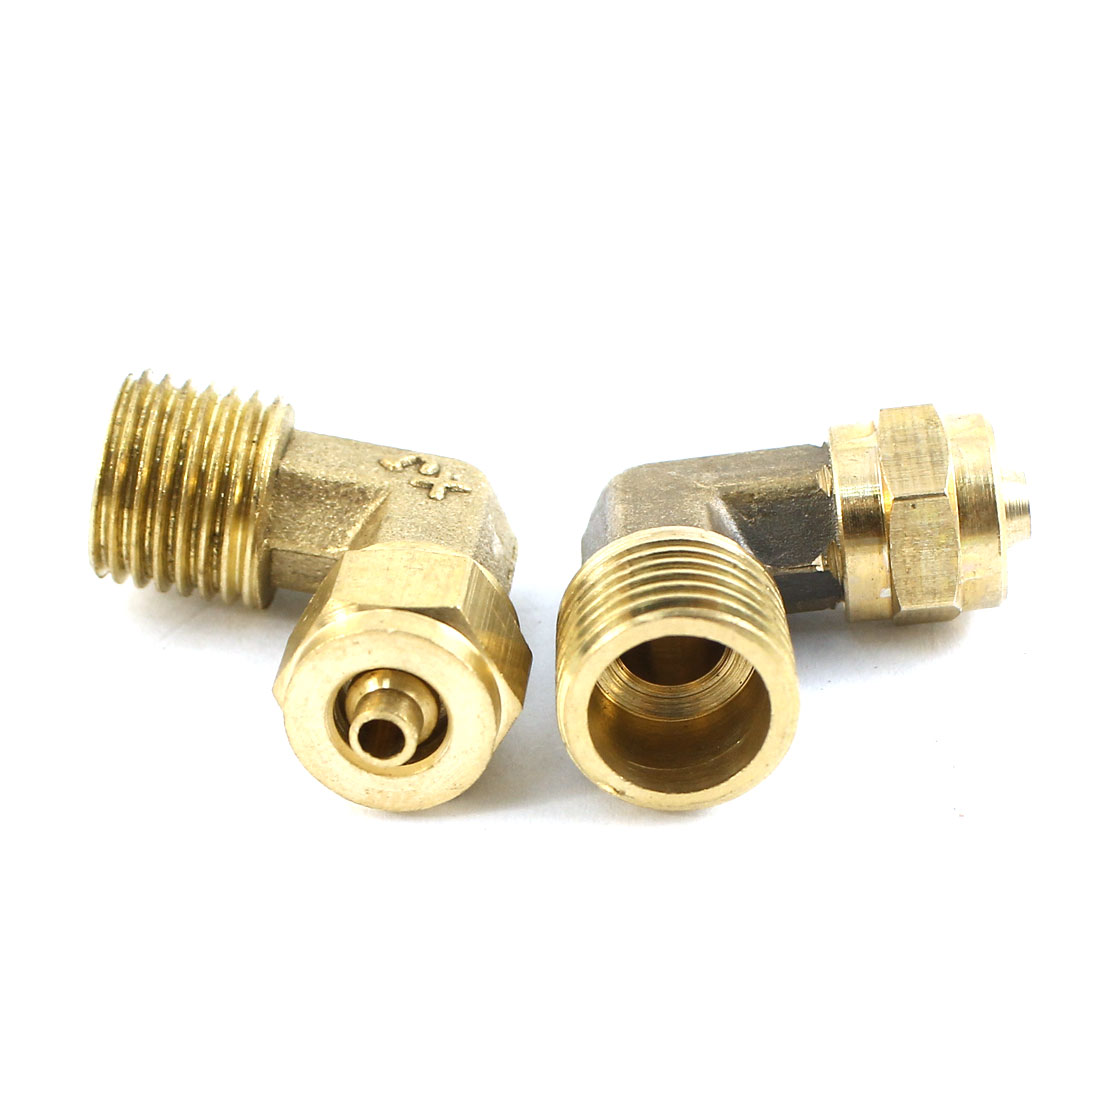 2PCS Air Pneumatic 1/4PT Male Thread 6mm Tube Dia Right Angle Quick Coupler Fitting Joint Connector